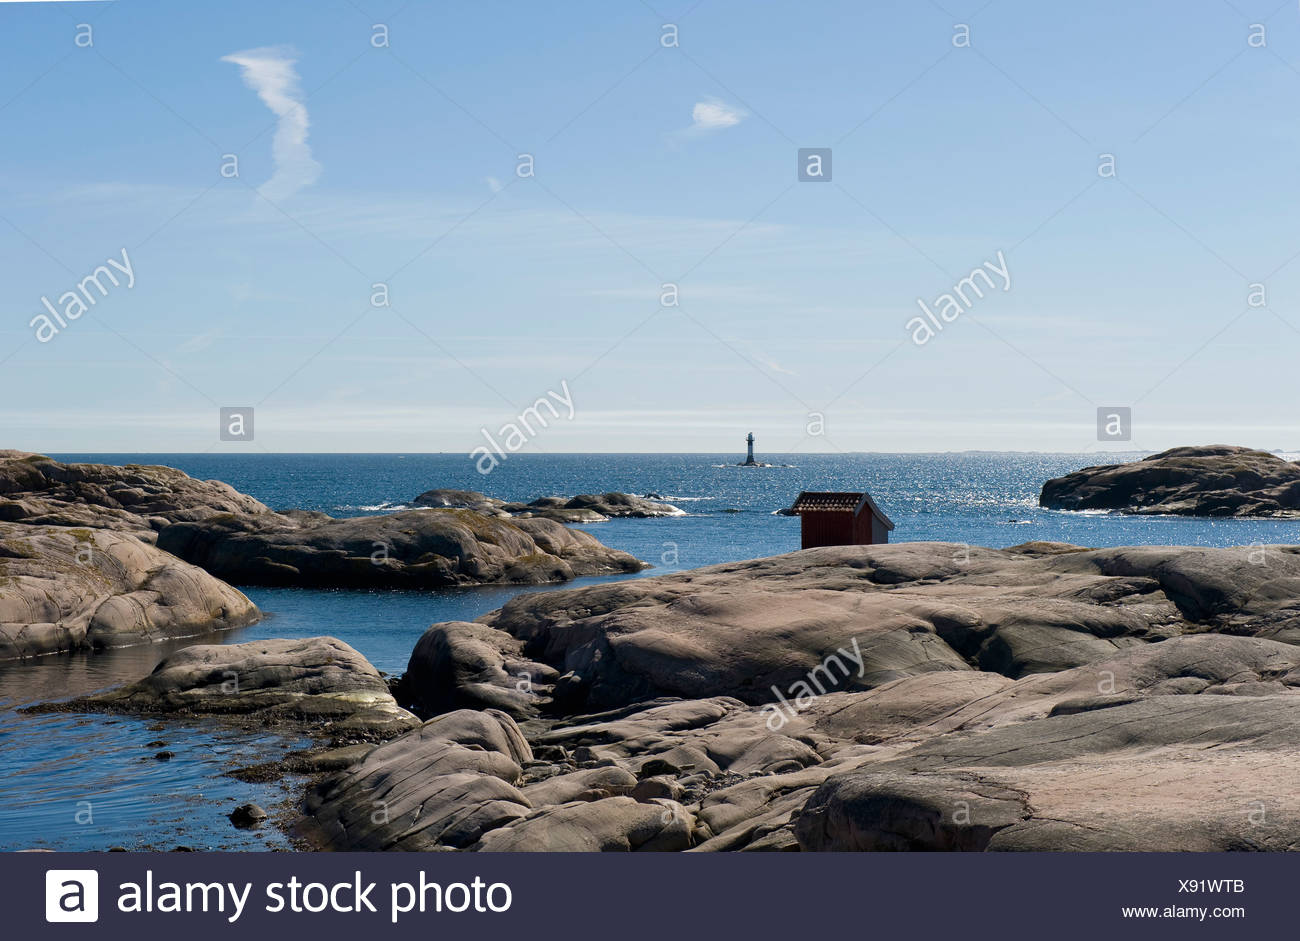 View over water - Stock Image